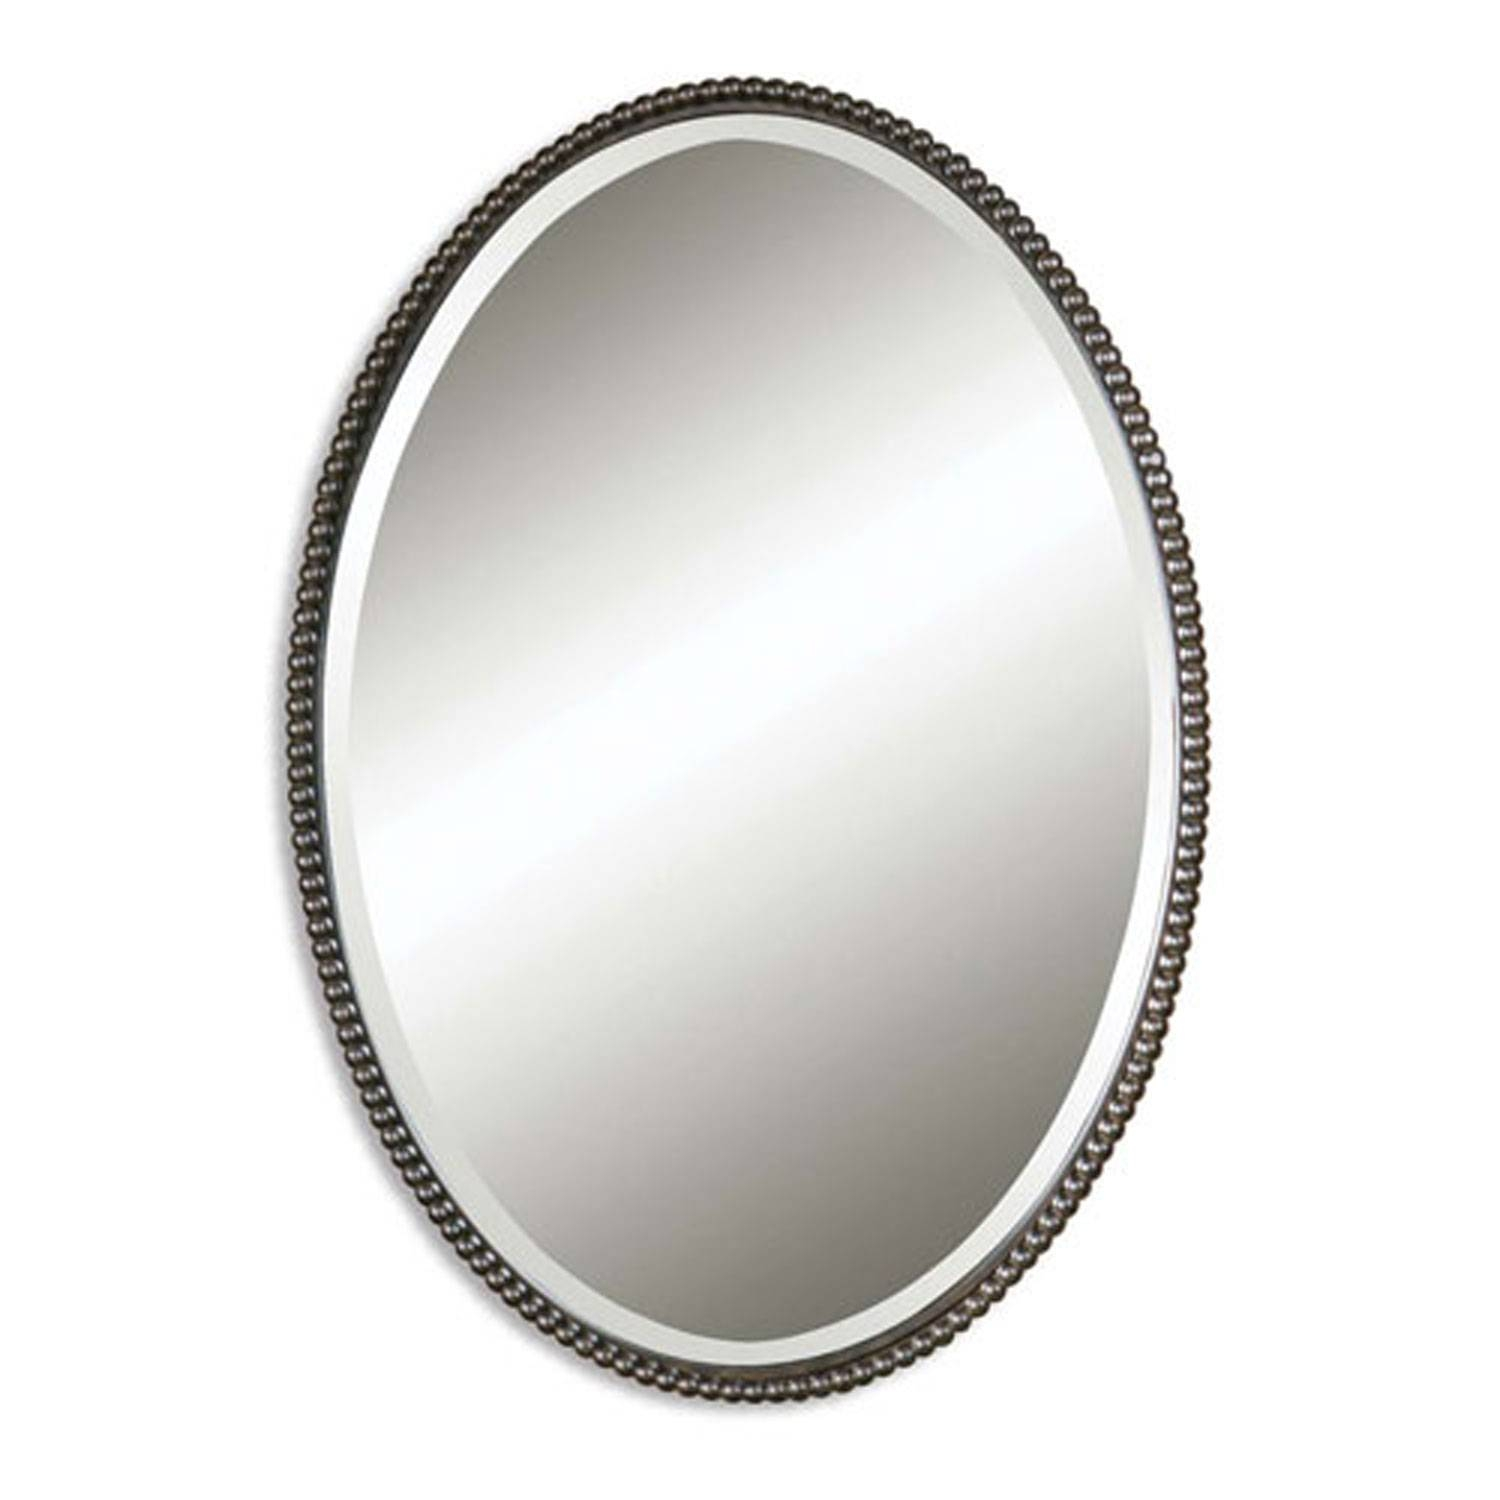 How To Make Oval Bathroom Mirrors Vx9s #1022 Intended For Oval White Mirrors (View 12 of 15)